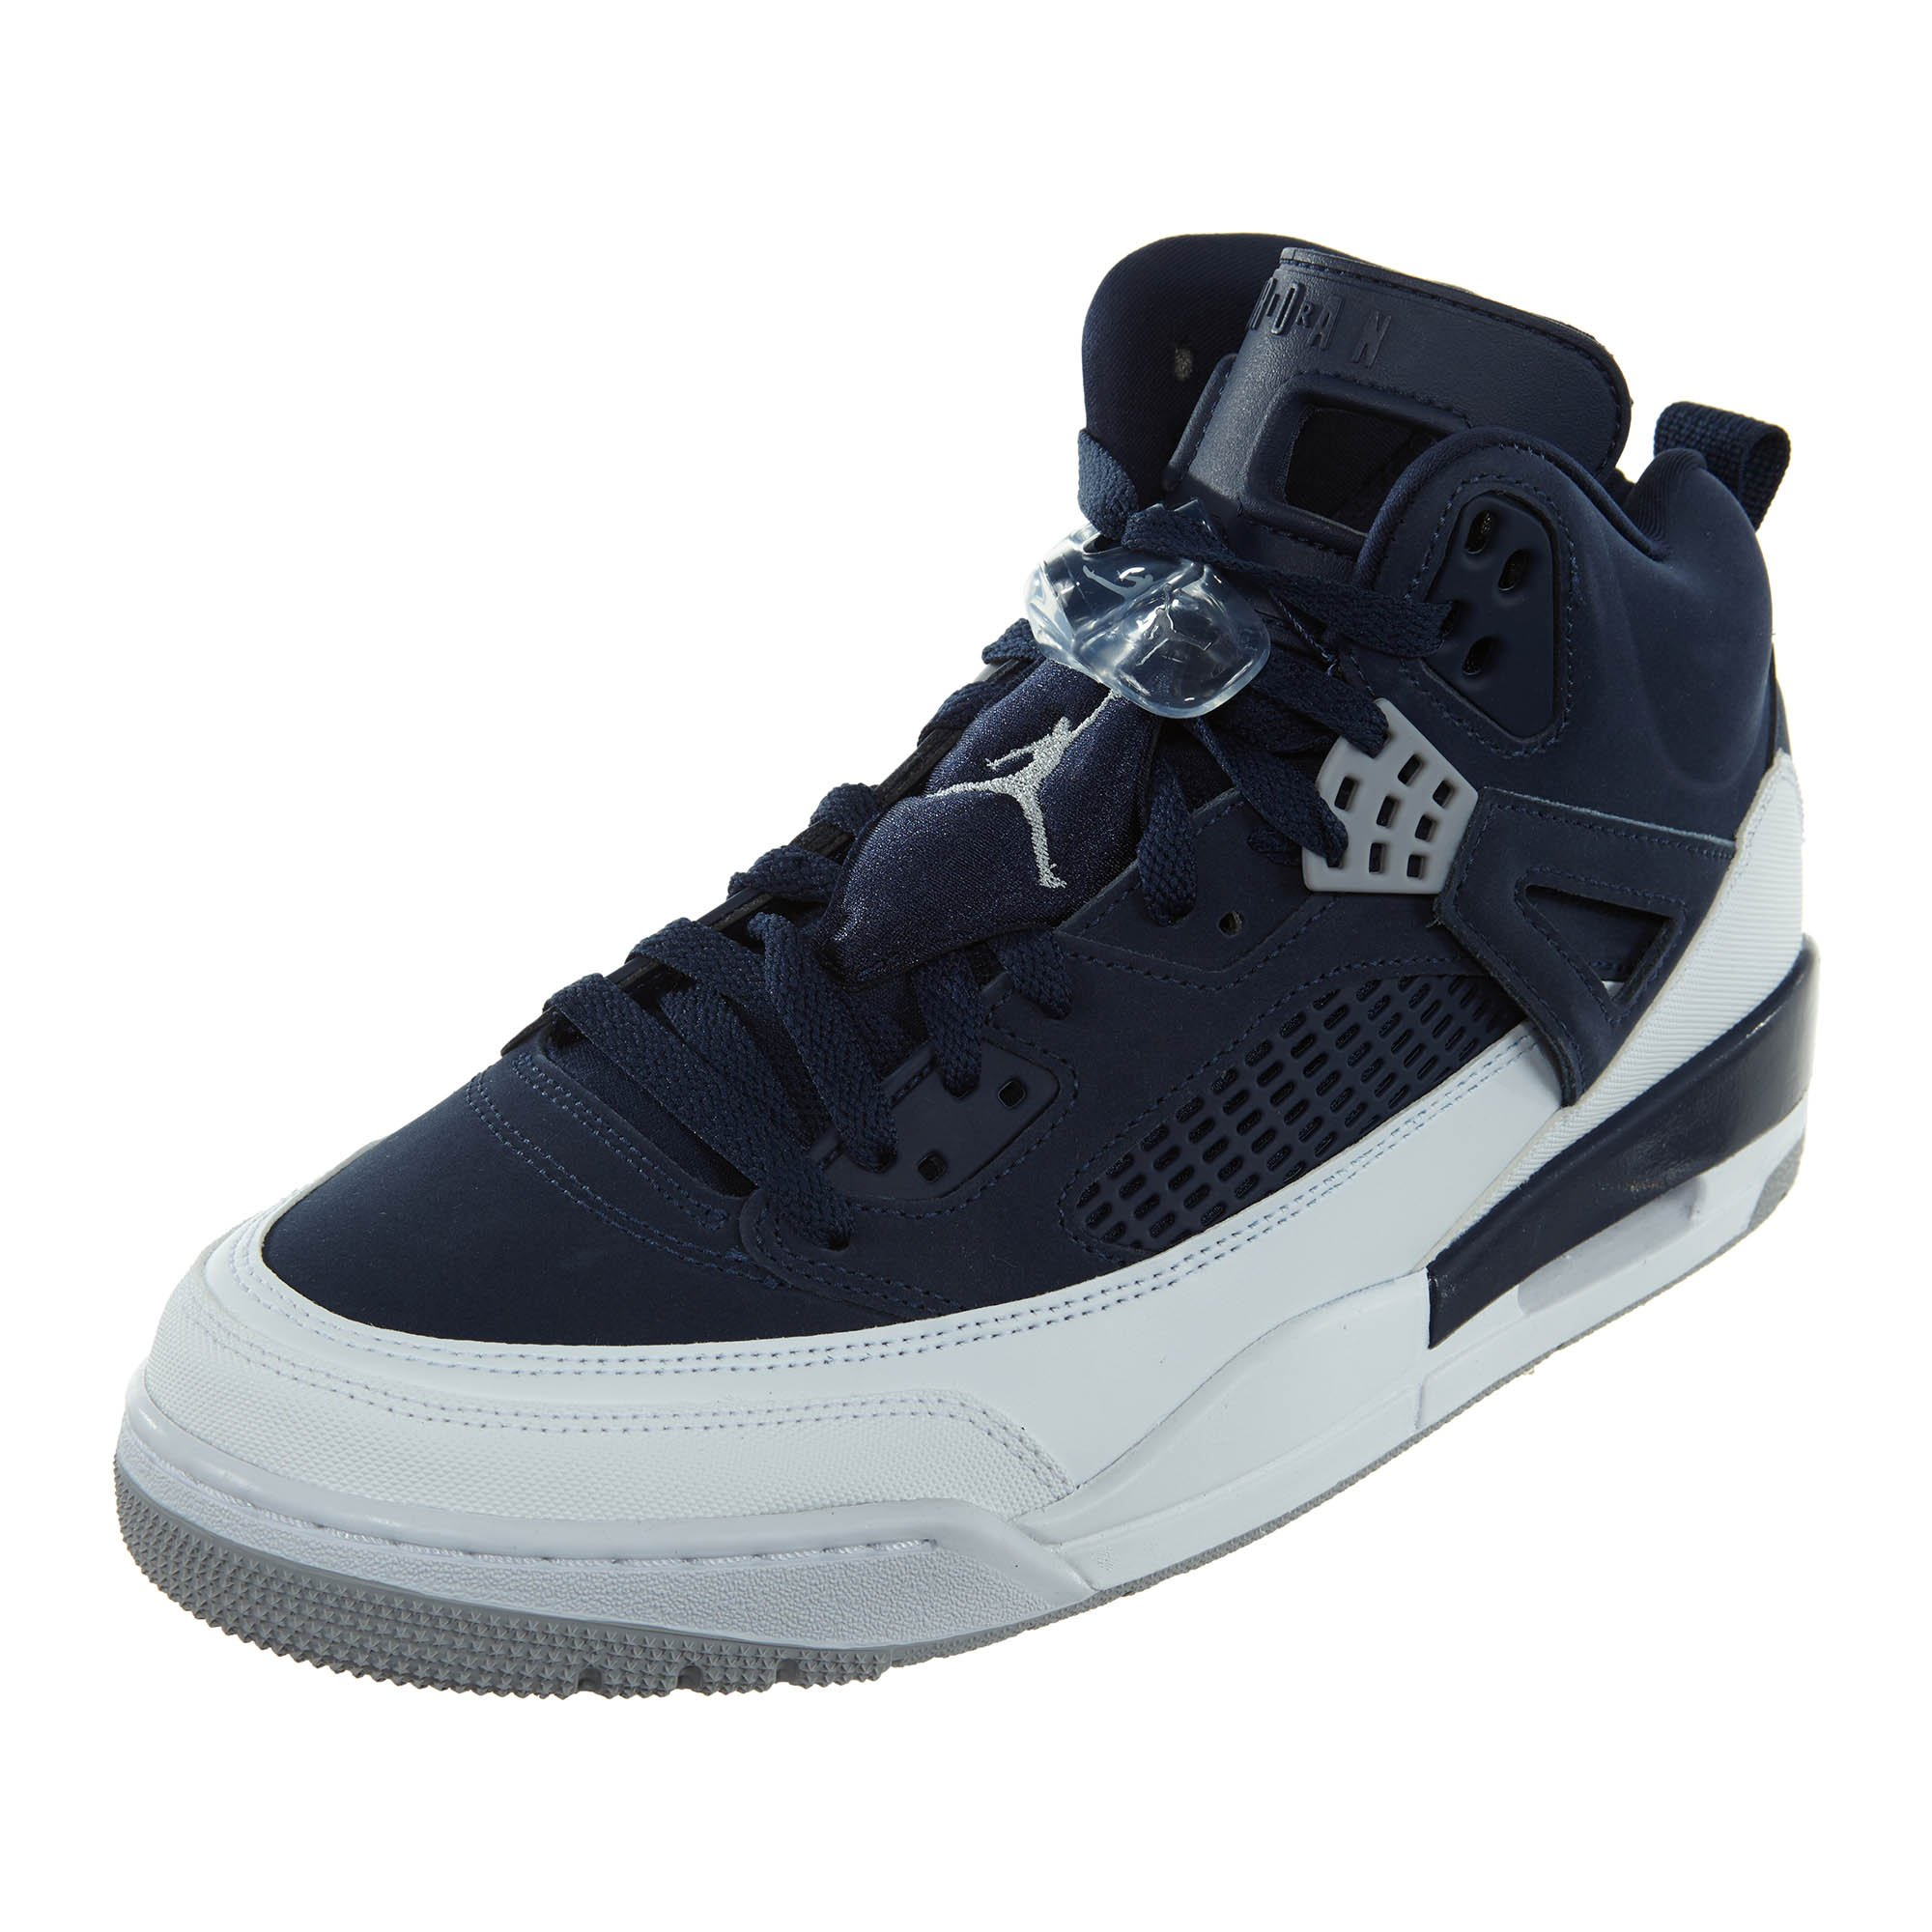 Jordan Spizike Men's Shoes Midnight Navy/Metallic Silver 315371-406 (12 D(M) US)